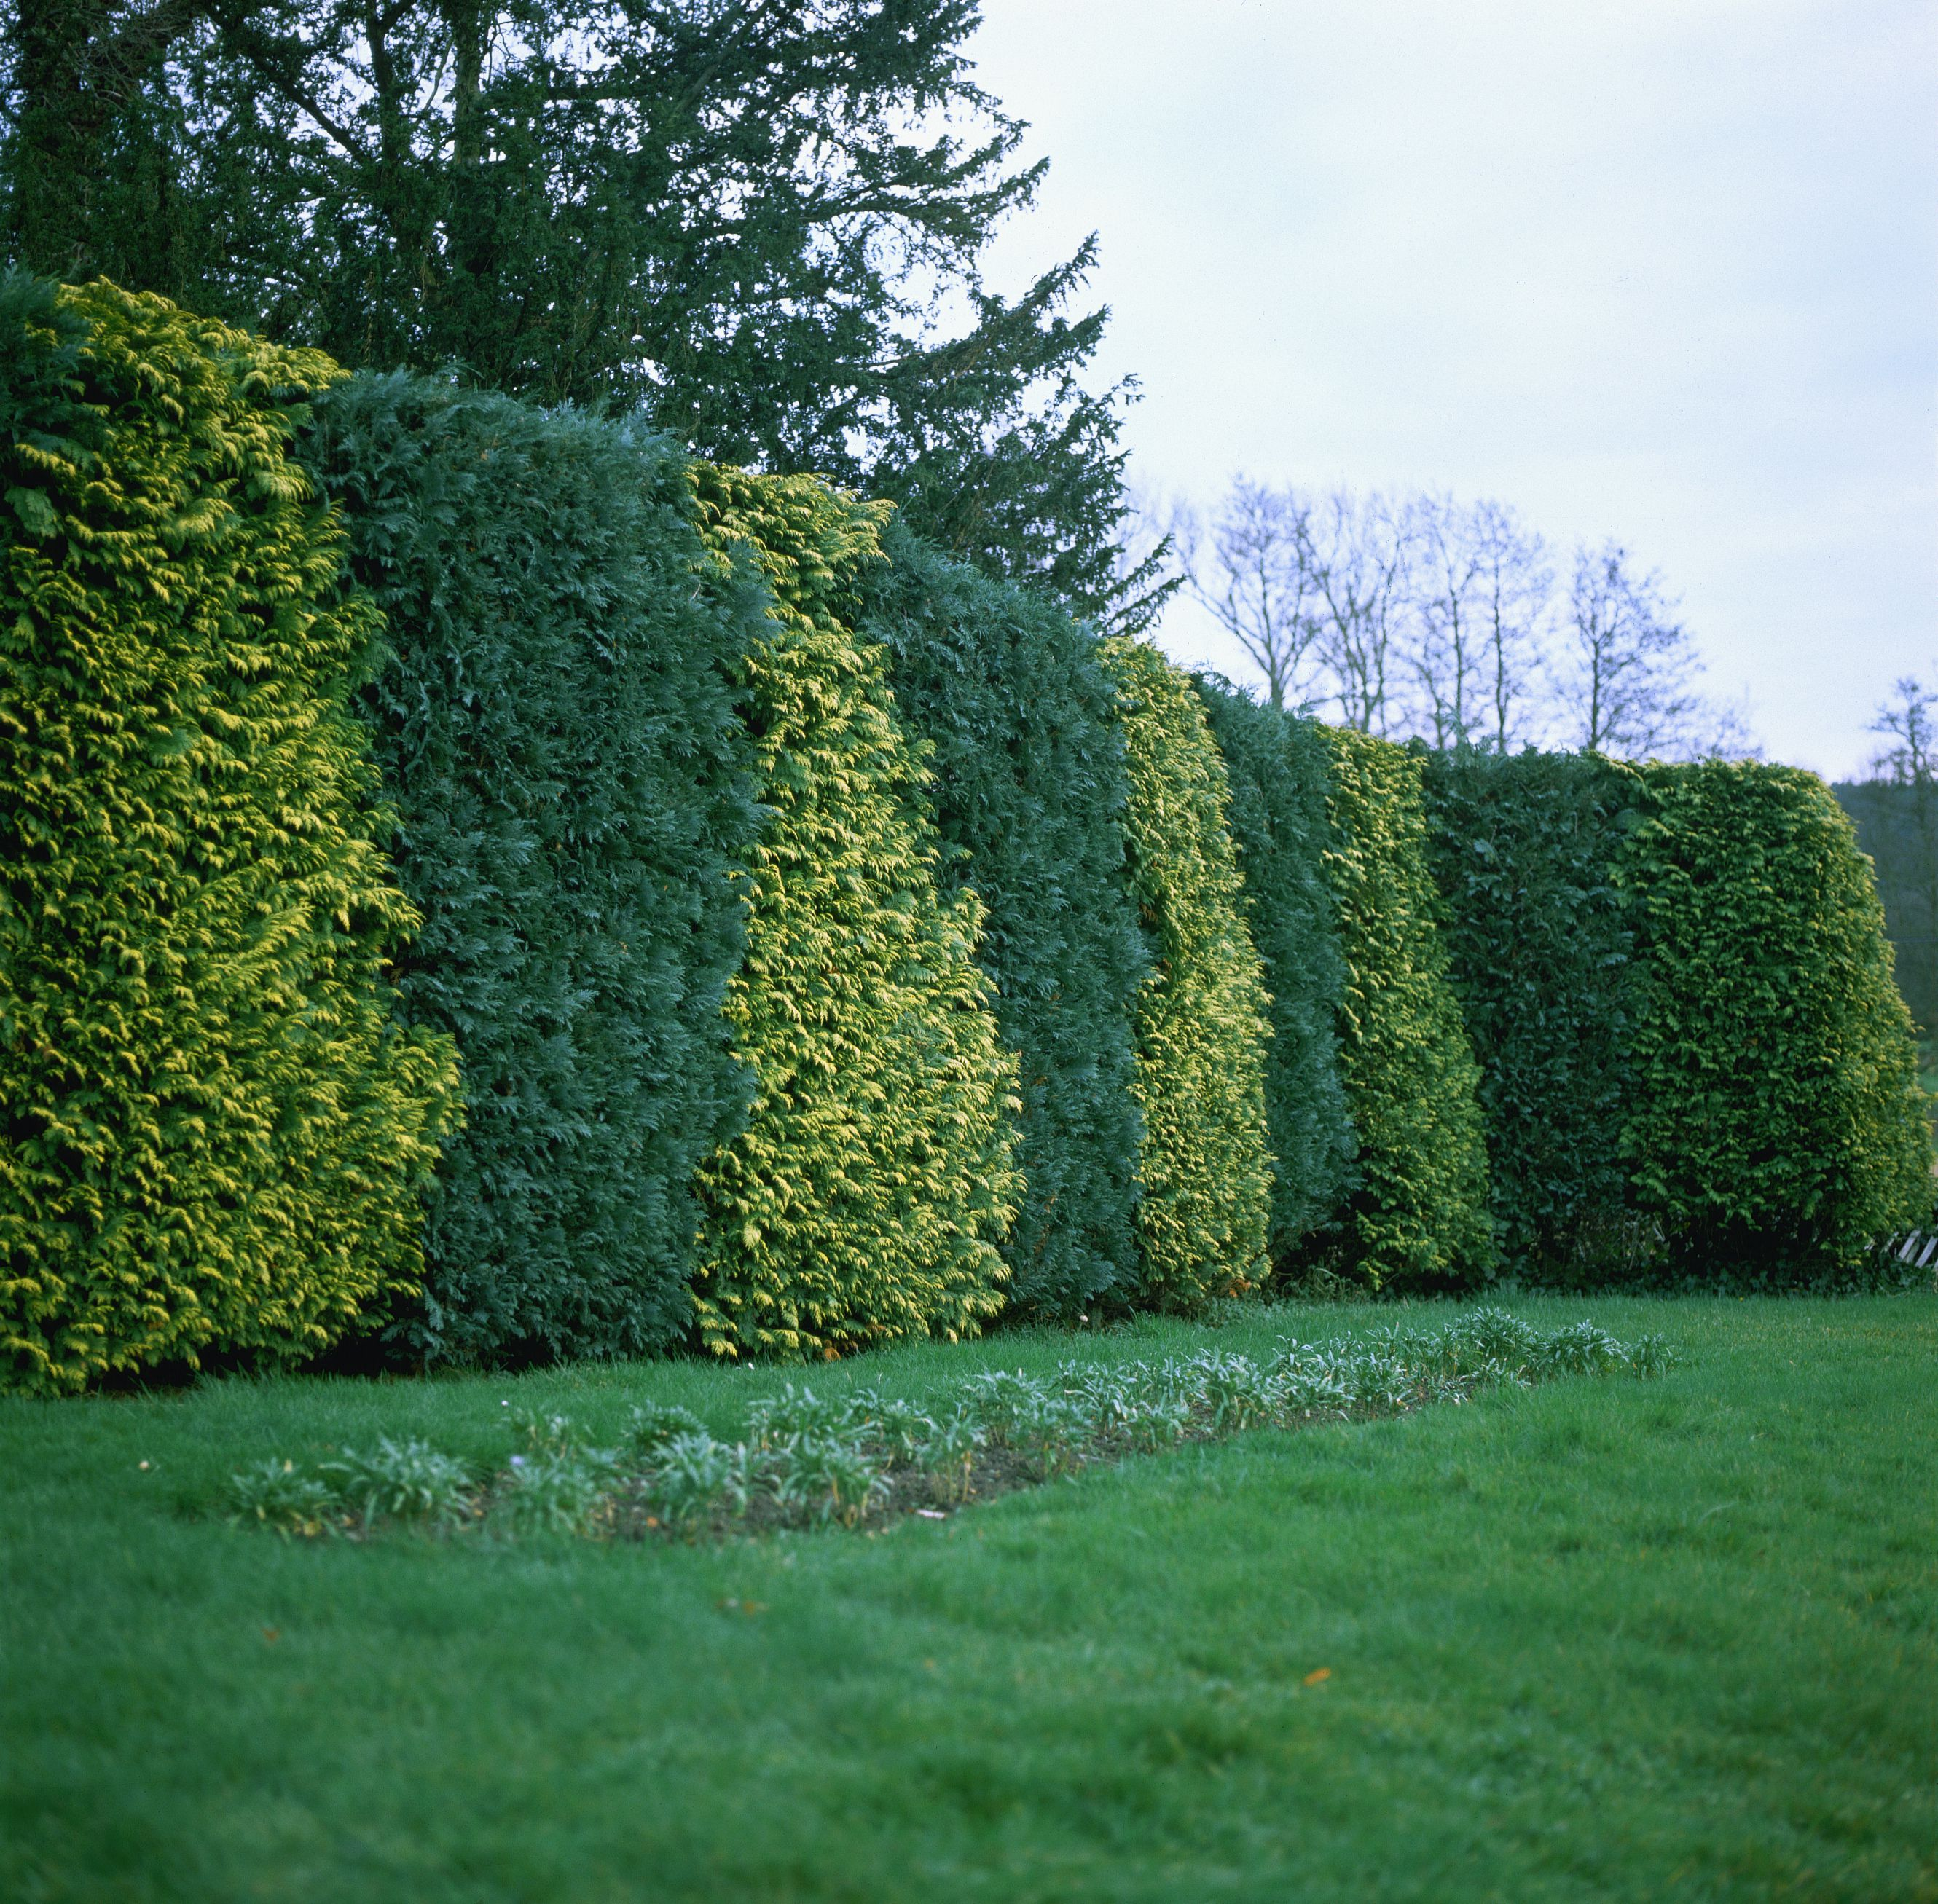 Variegated false cypress trees made in a hedge